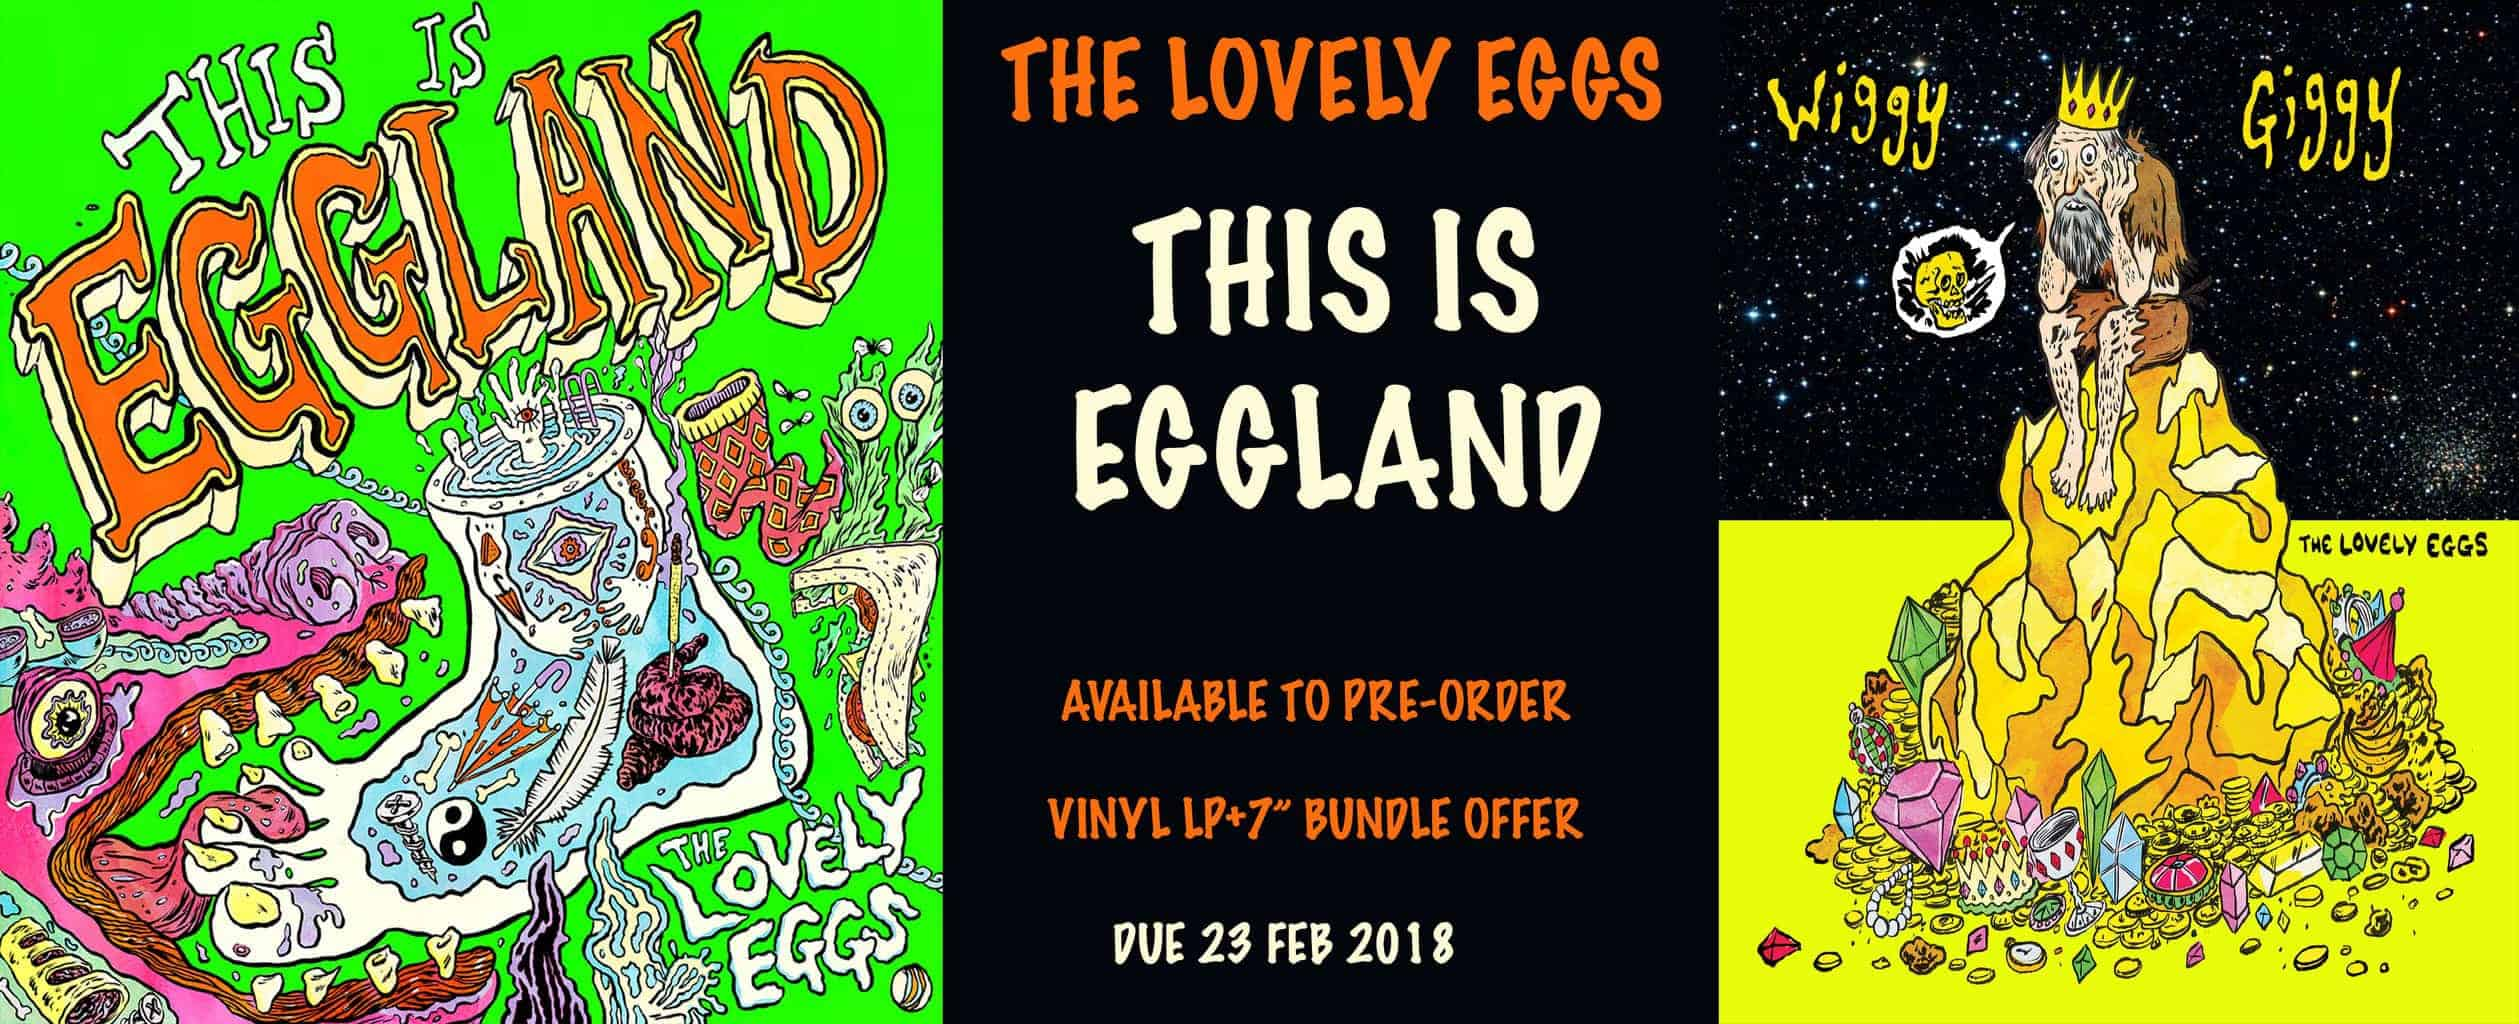 the lovely eggs, this is eggland, vinyl lp, cd